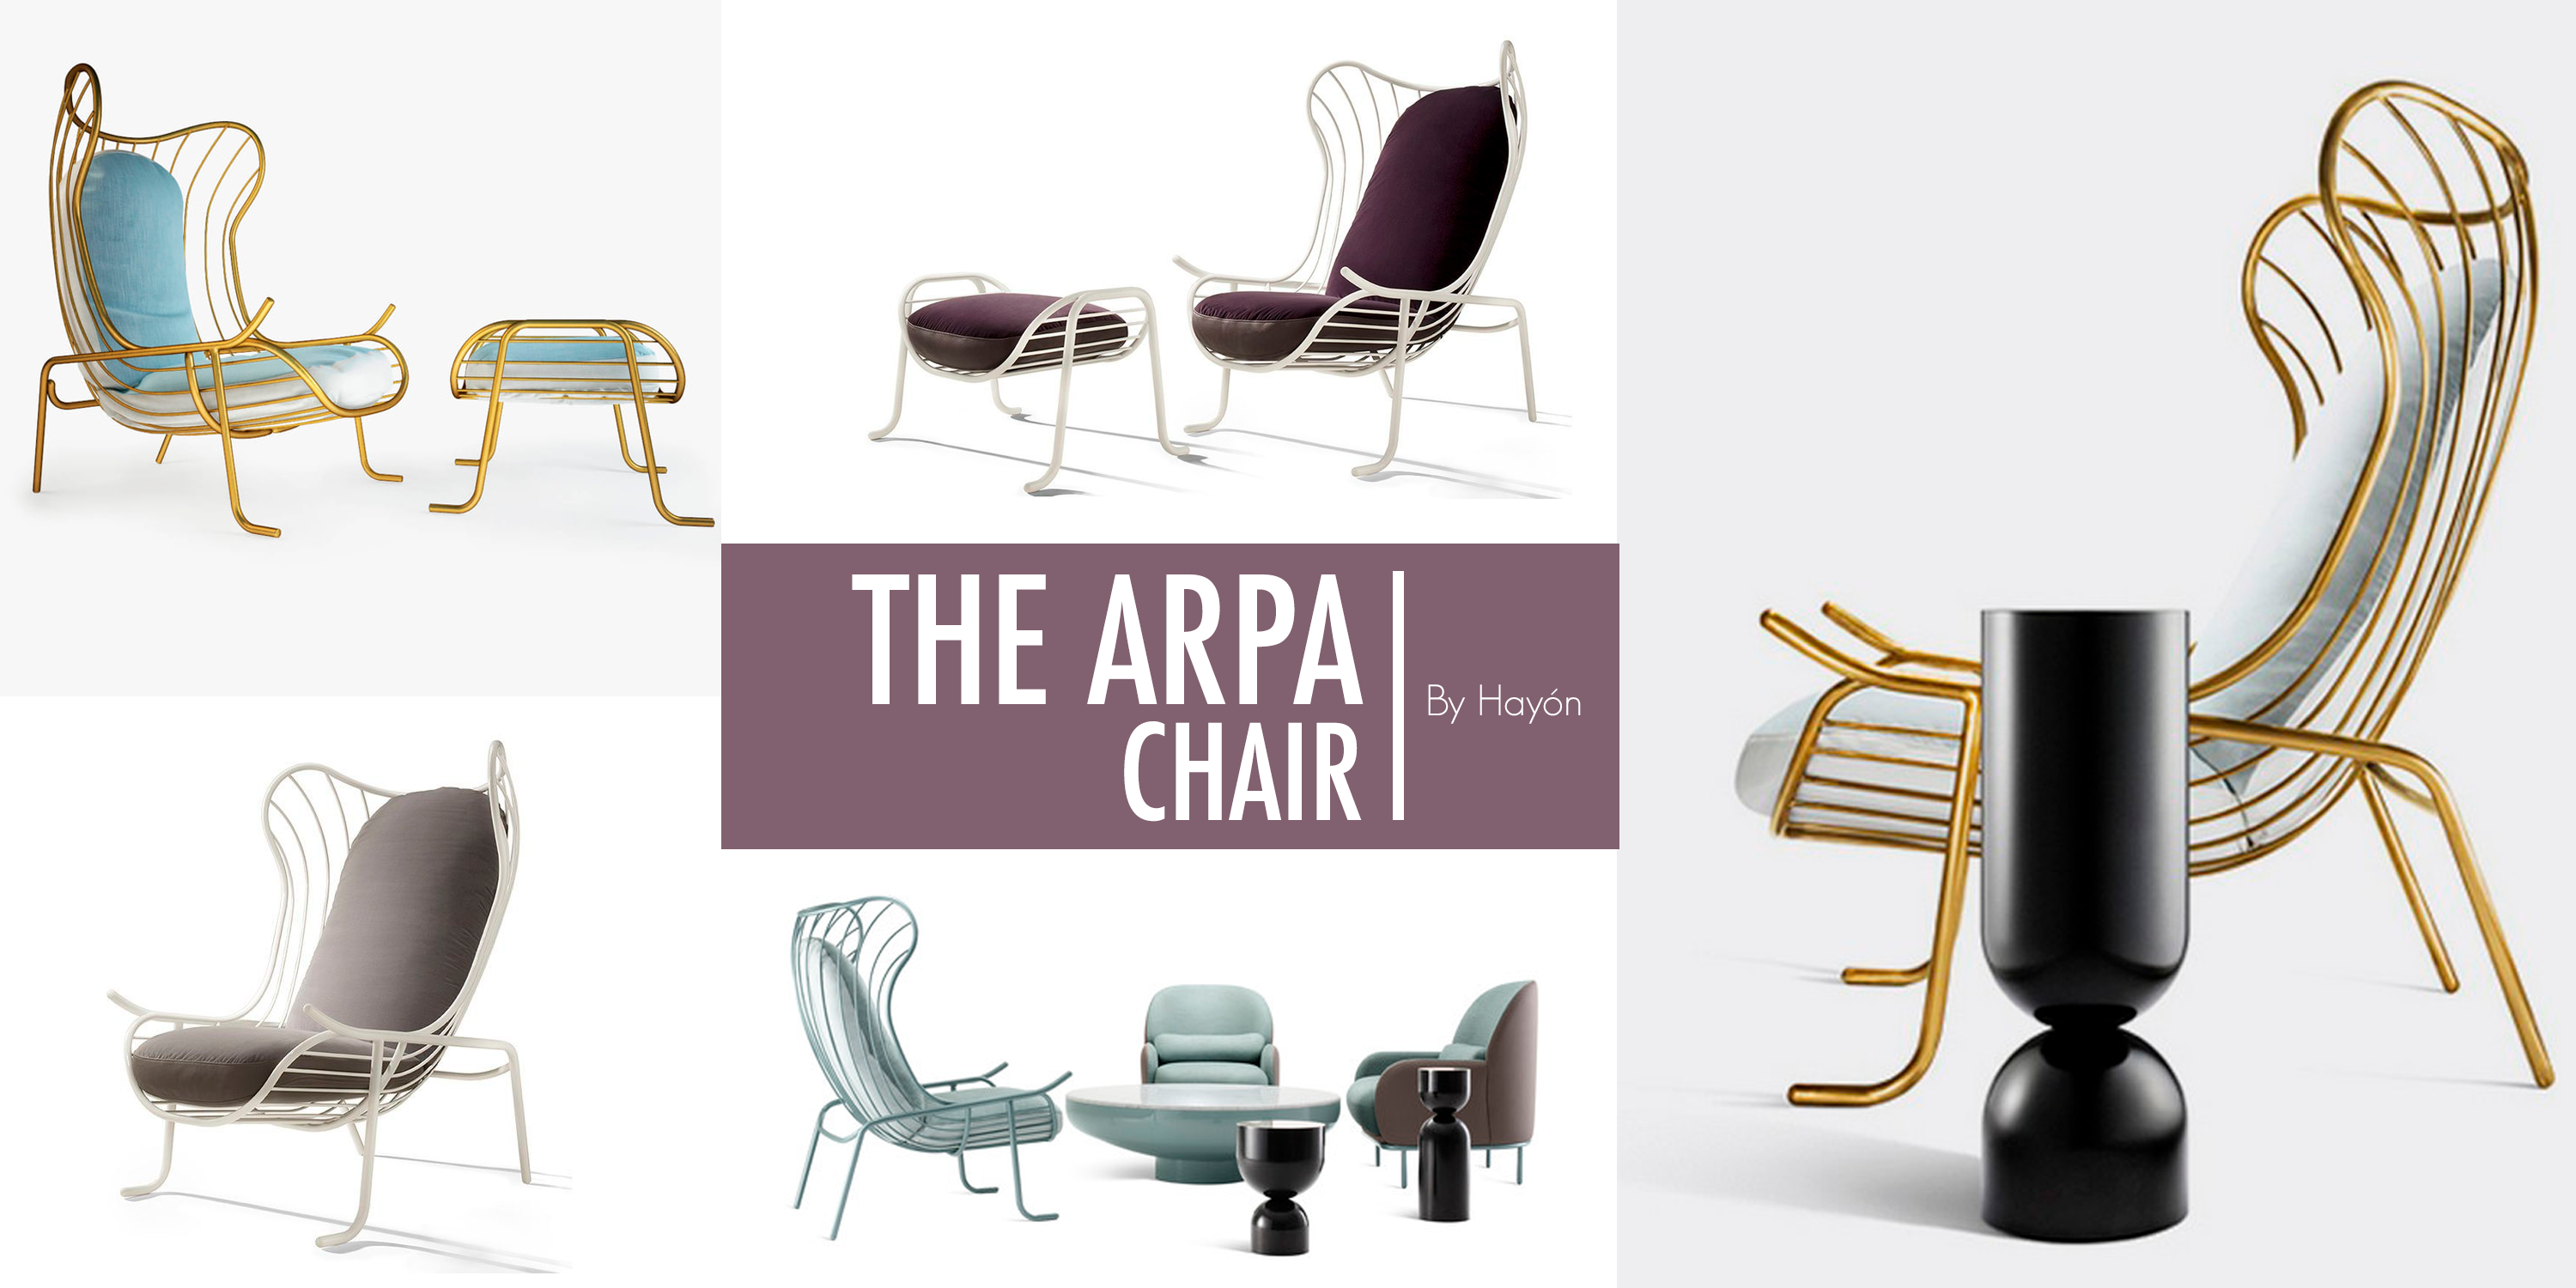 ``The Arpa Chair`` by Hayón